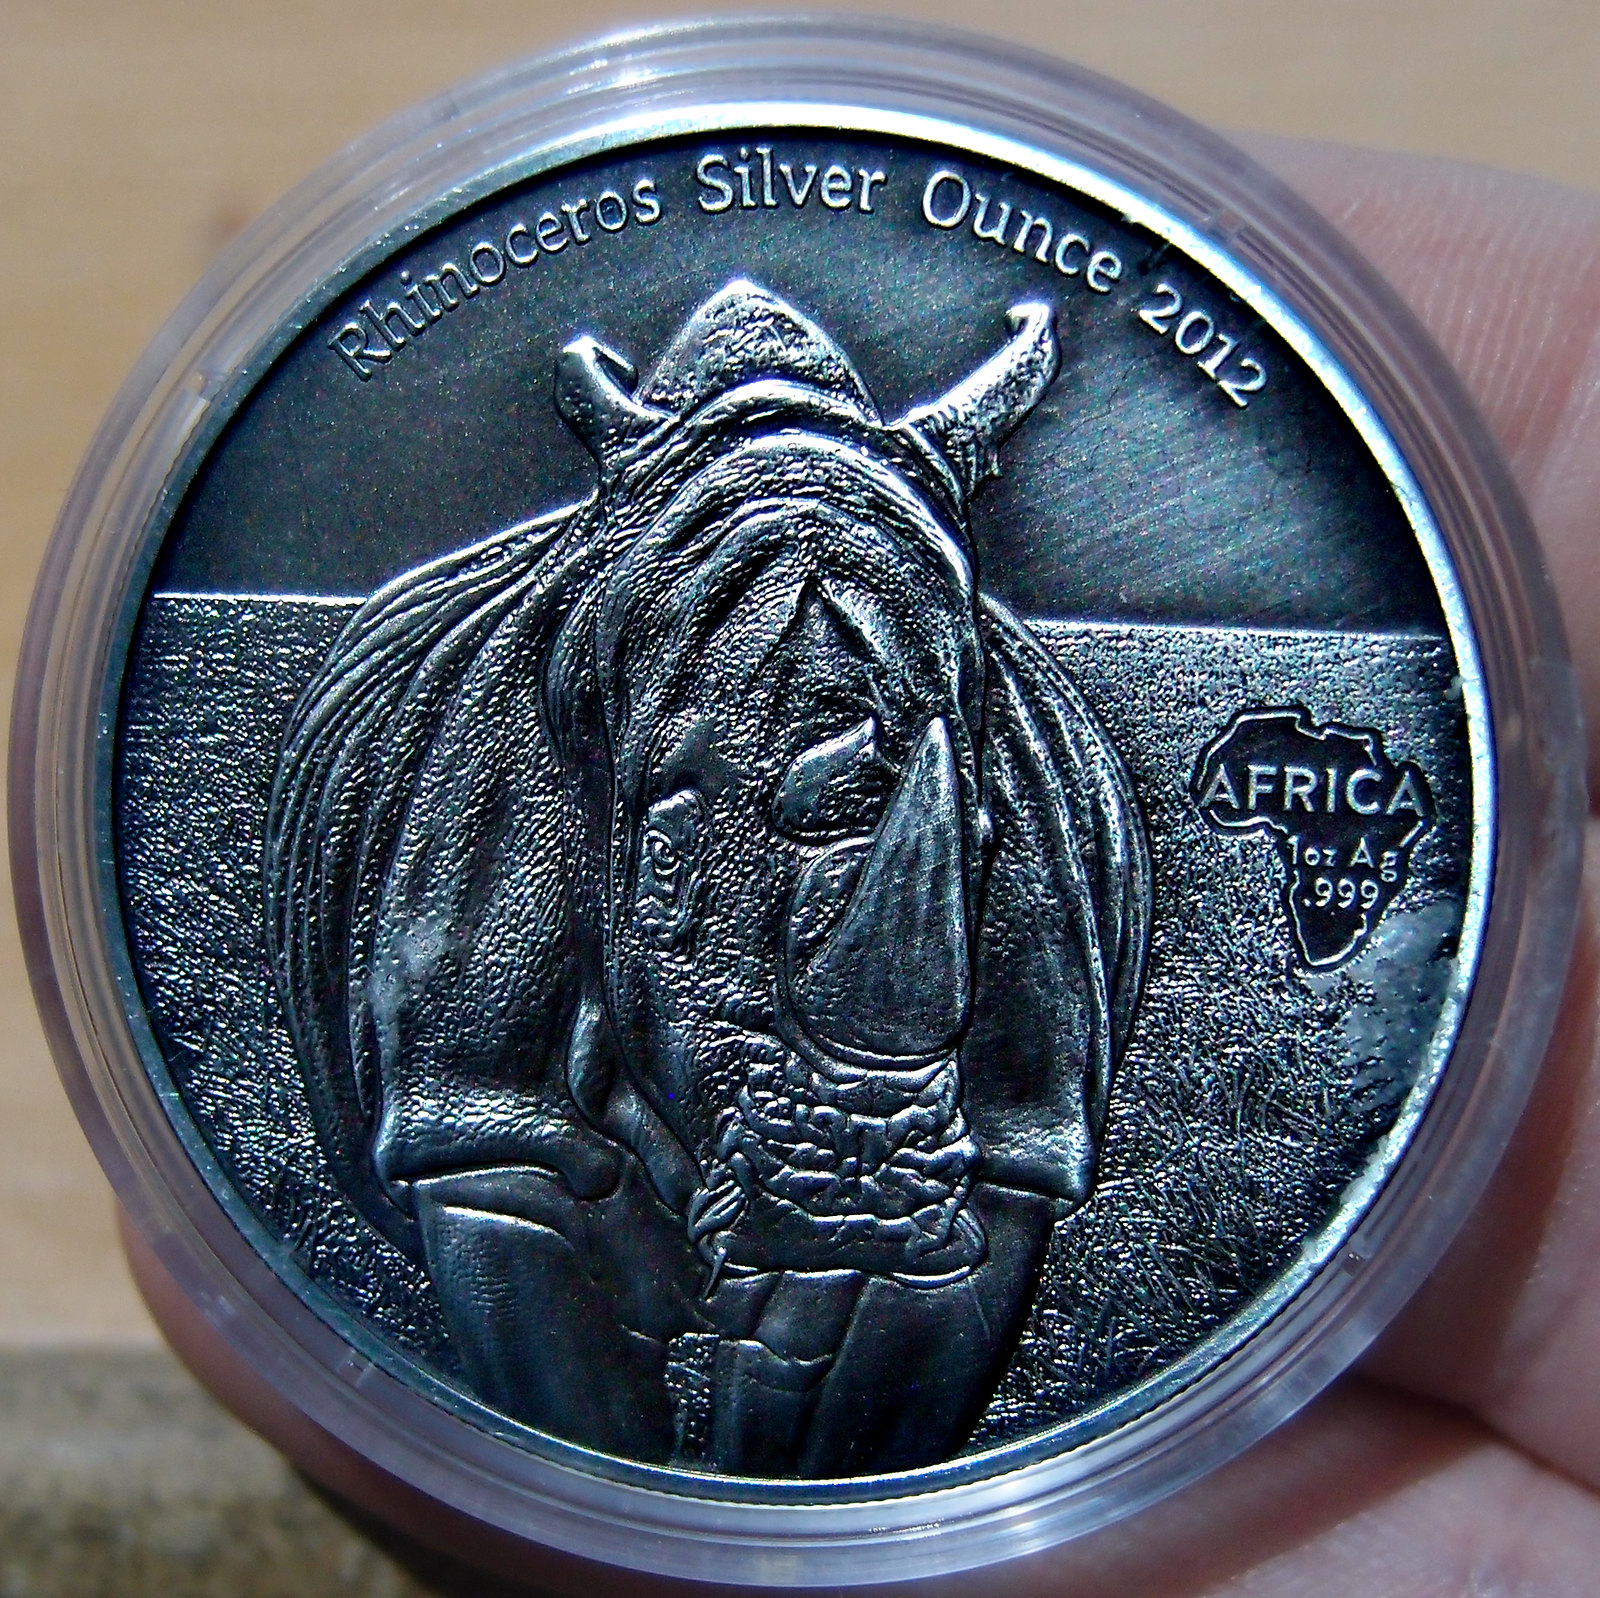 African Silver Ounce Serie  10025218384_a0bfd0d1ed_h